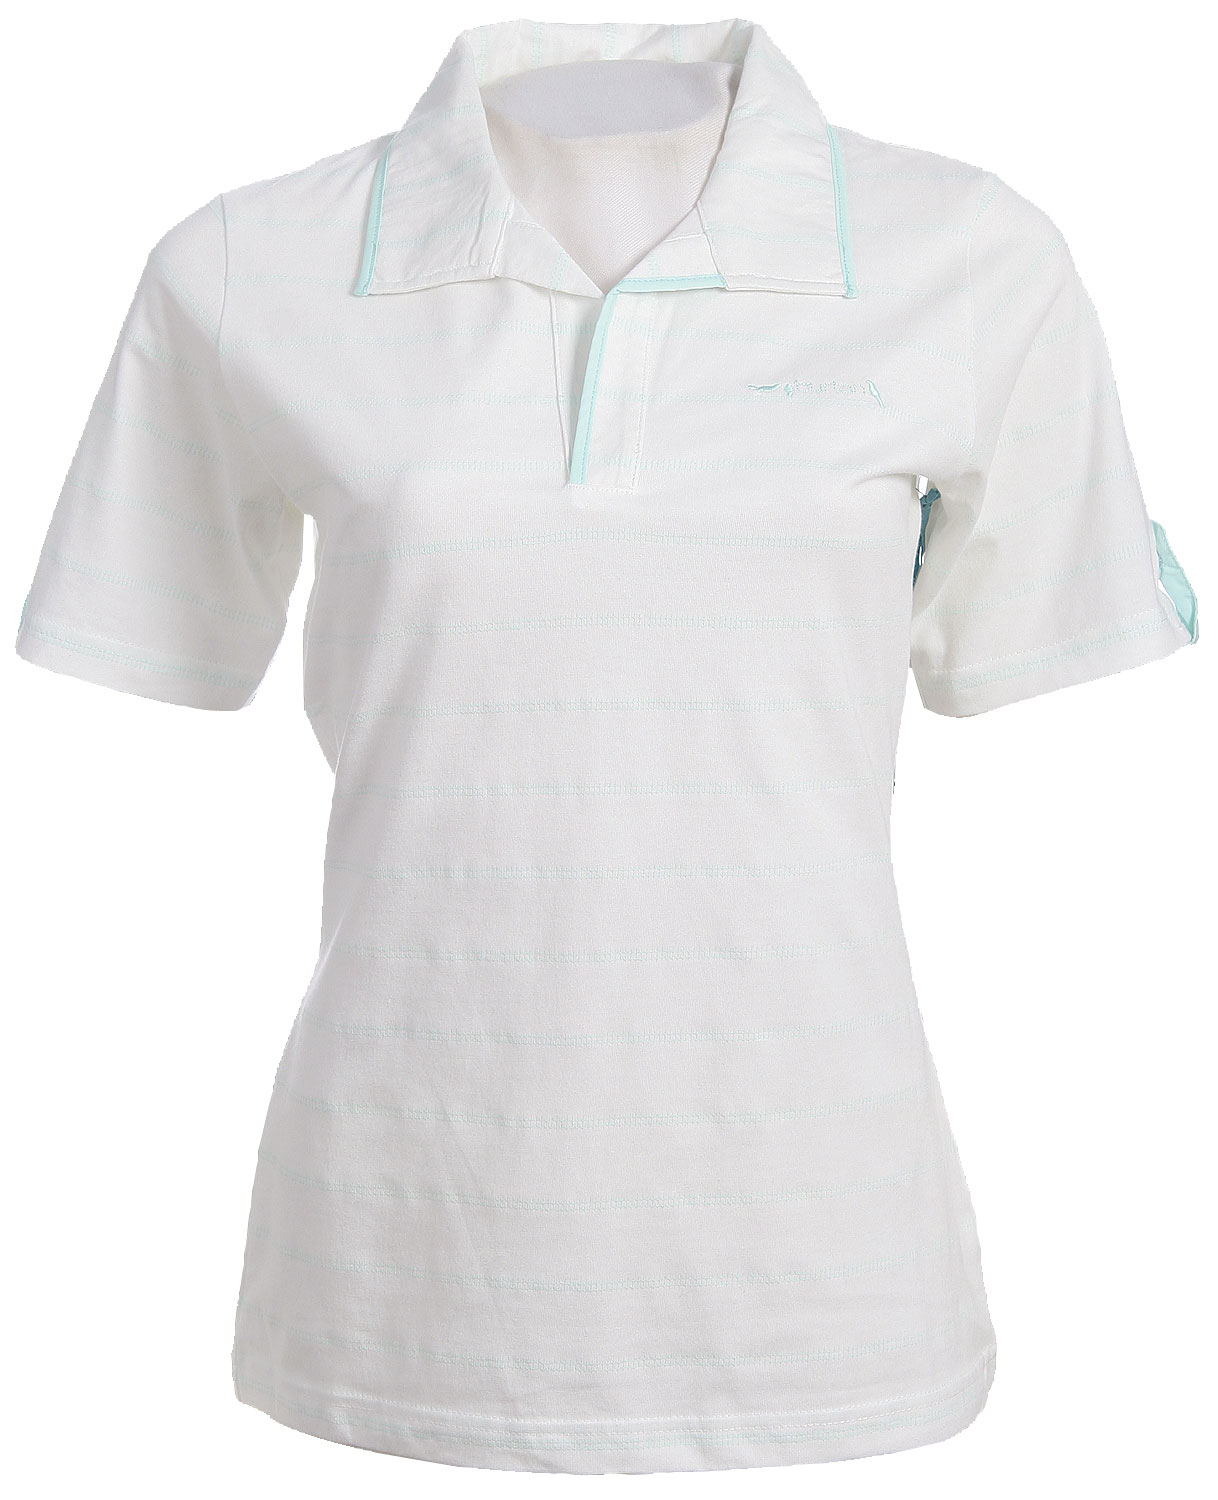 Golf Ladies, get ready to hit the golf course with this fabulous shirt, the Burton Skyline Polo. Made with 100% cotton, this classic polo shirt is perfect for a day on the course.  Looking undeniably like you belong, rock it out with style and confidence.  Casual enough for everyday wear, this shirt can be worn almost anywhere.  But, lets hit the gold course first and flaunt your skills to everyone around you.Key Features of The Burton Skyline Women's Polo Shirt:  100% Cotton Jersey  Contrast Embroidered Artwork on Wearer's Front Right  Contrast Embroidered Process Logo on Wearer's Bottom Back Right  Contrast Woven Binding and Cuff Tab  Custom Wooden Buttons  Knitted in Out Stitch - $16.95